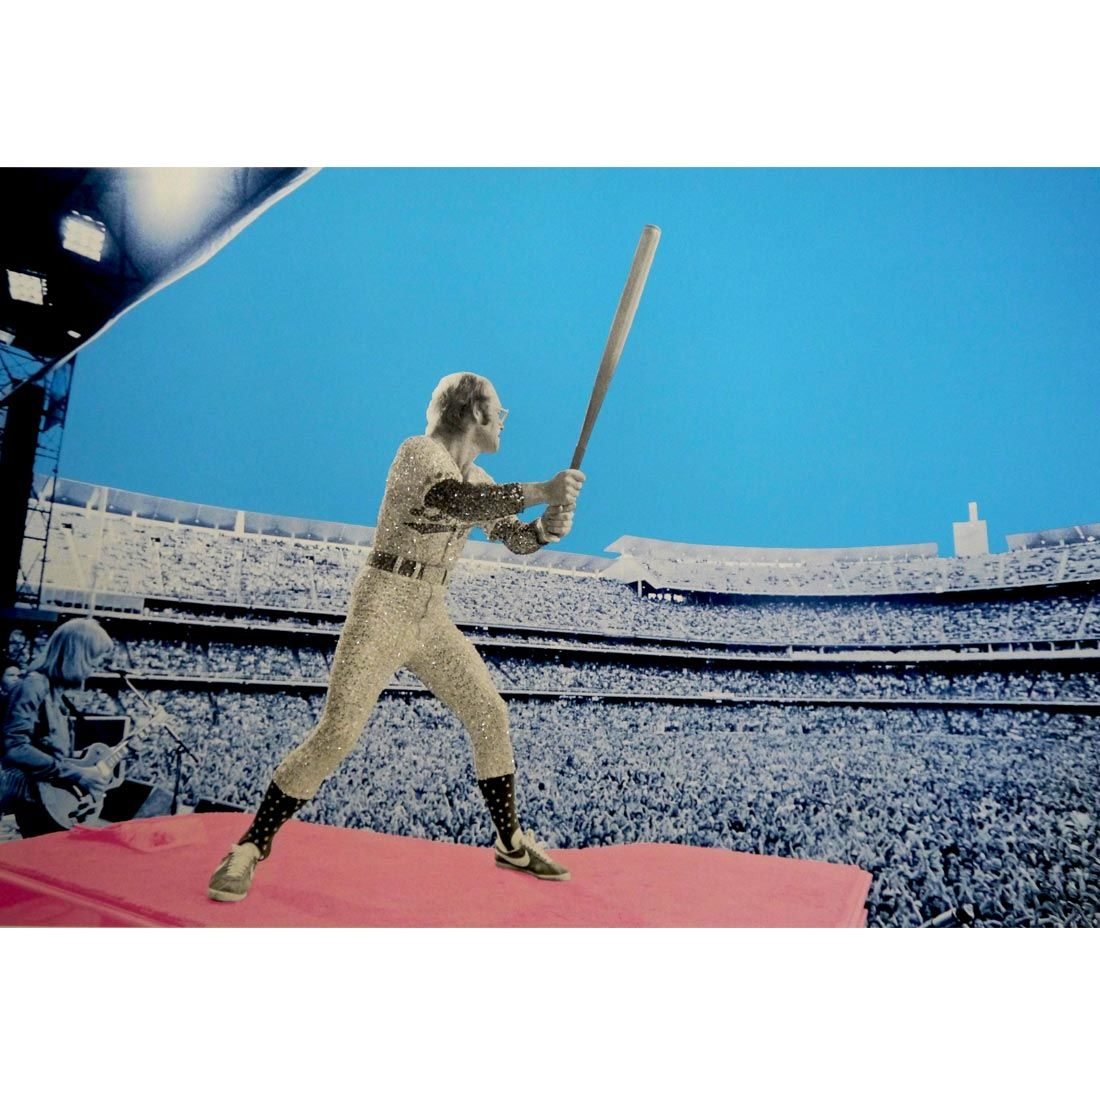 Elton John: 'Elton John : Home Run' - Dodger Stadium 1975 (signed by David Studwell)